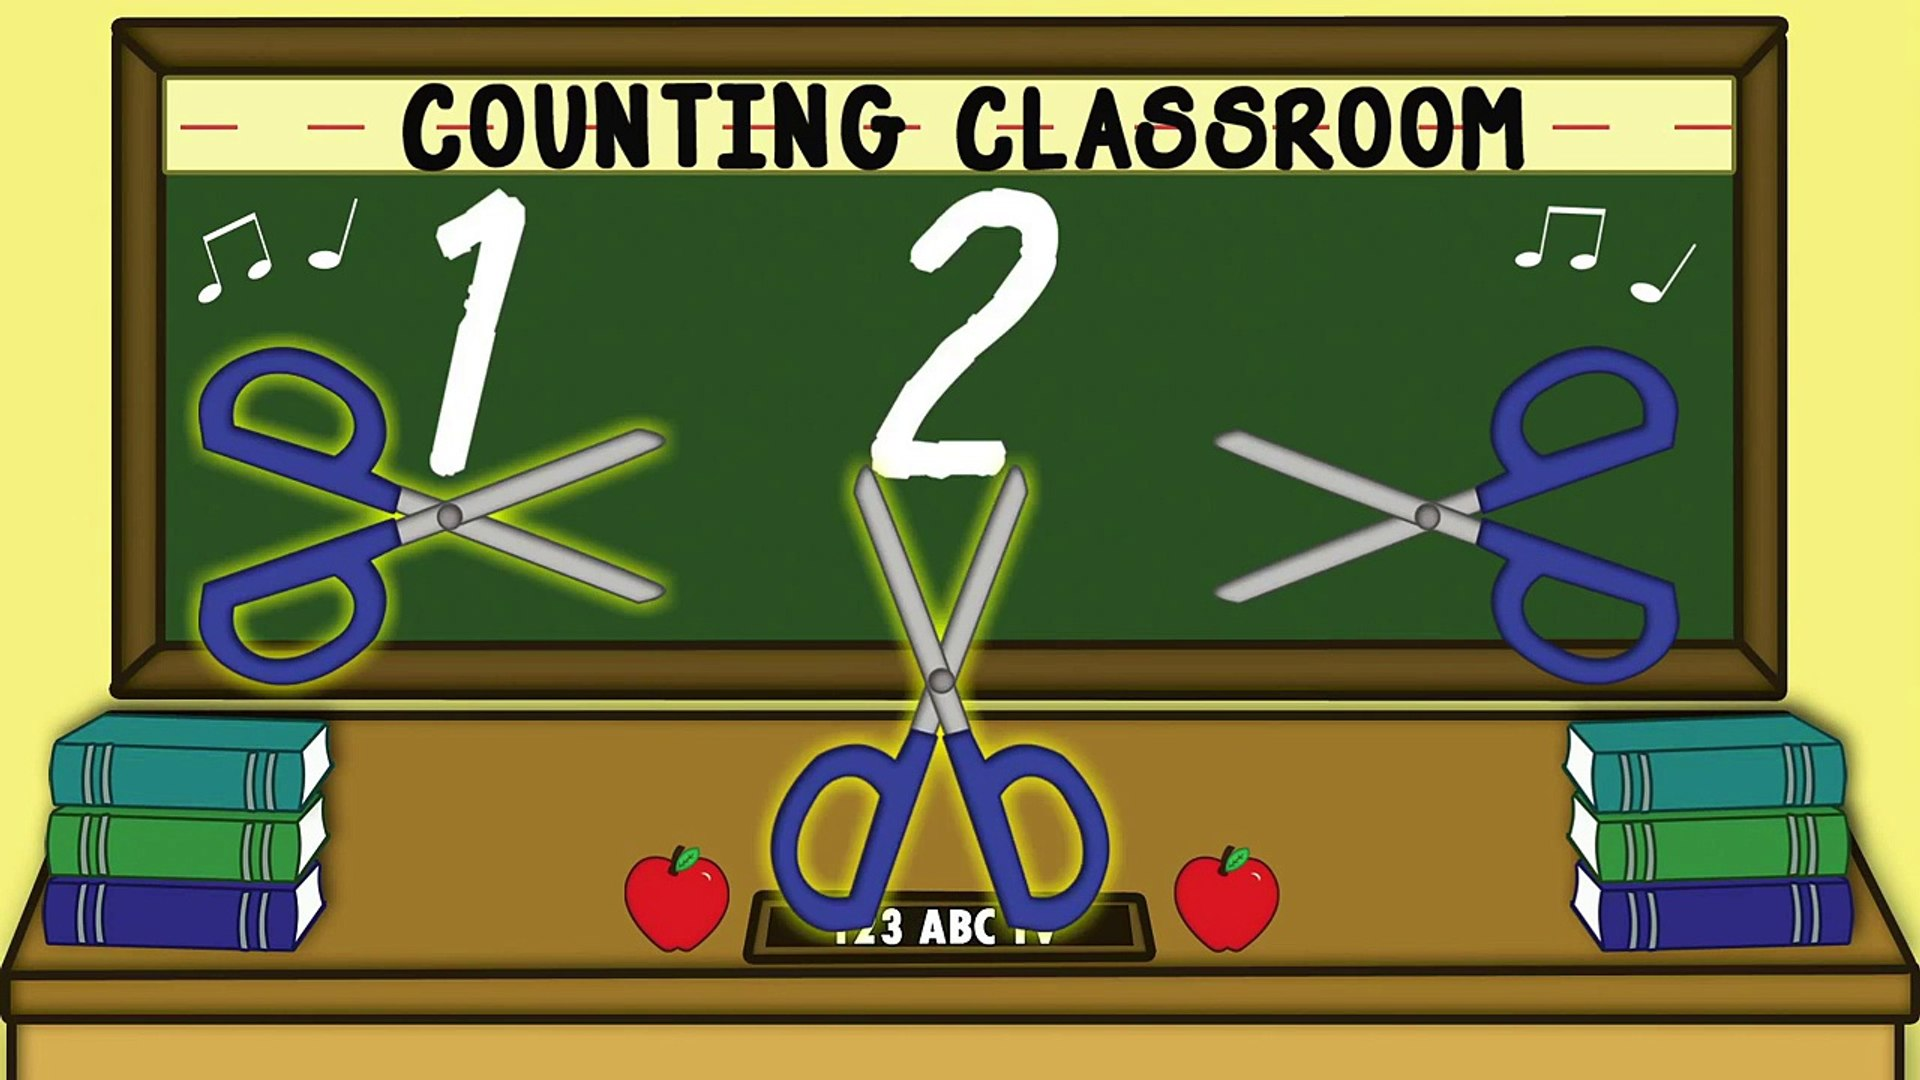 Counting Classroom - Counting to 5 - Learning to Count - Fun Kids Songs Preschool